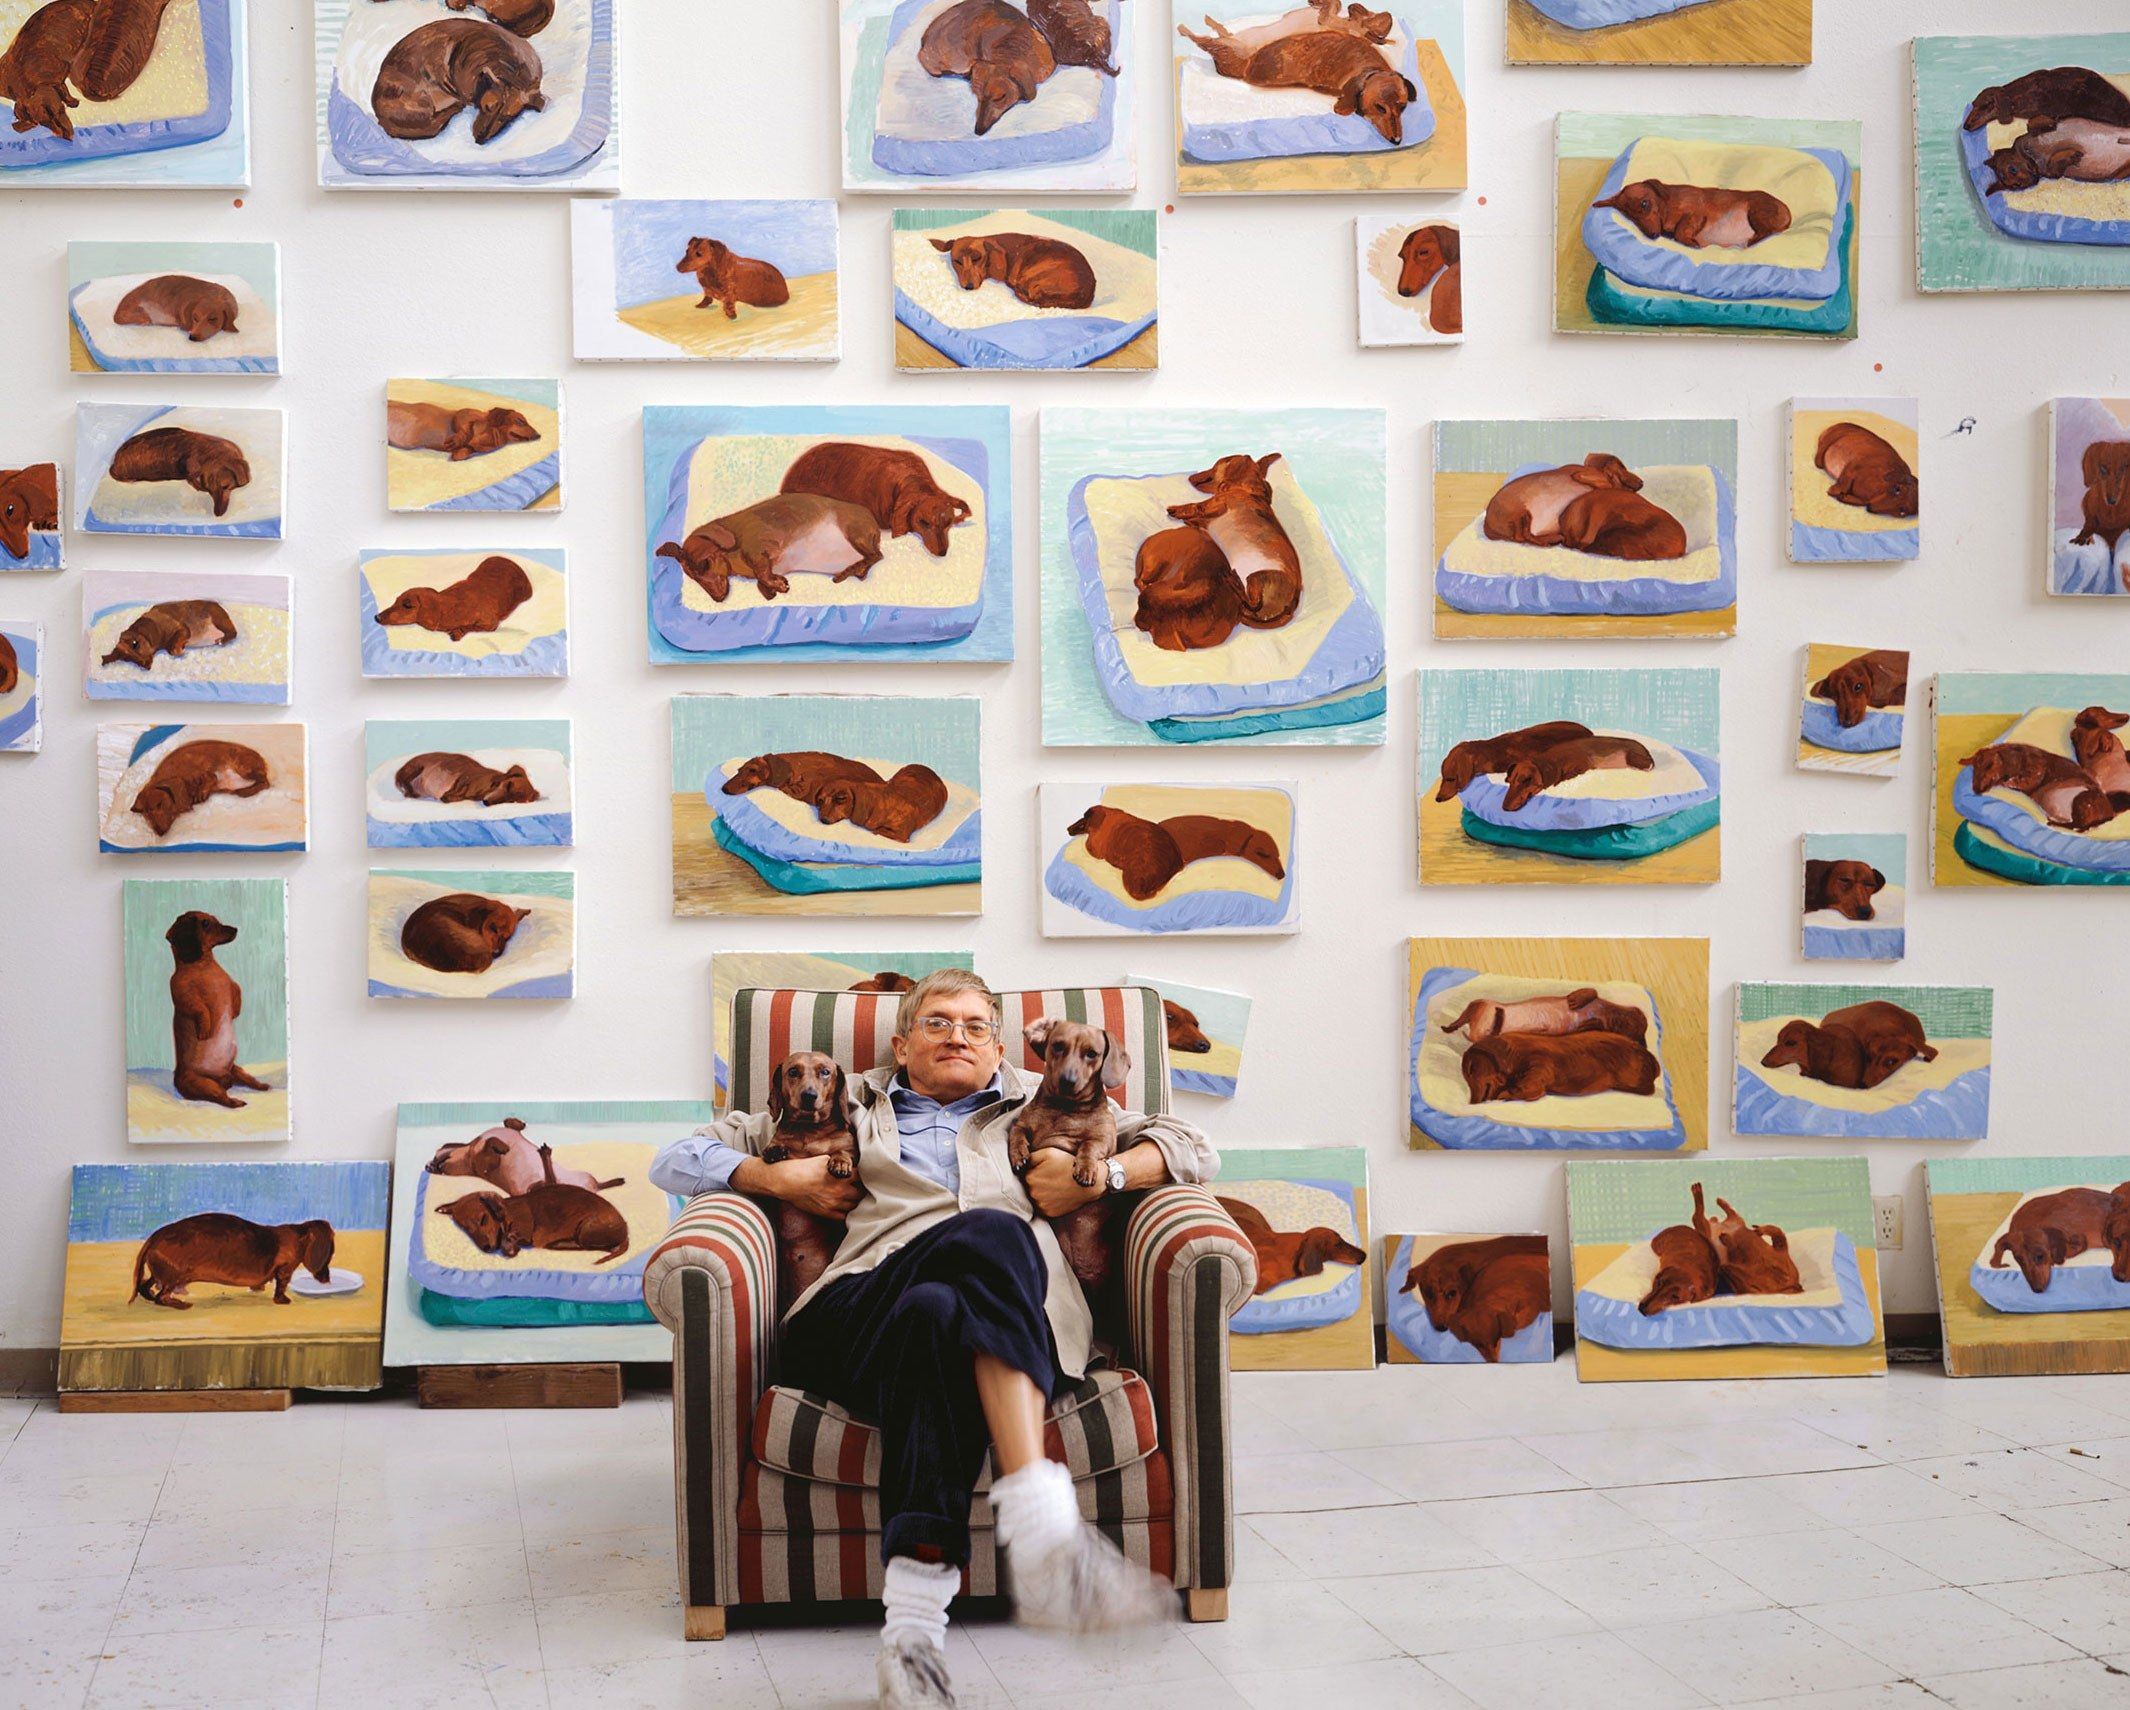 Hockney with his two dachshunds, surrounded by canvases of his two dogs.